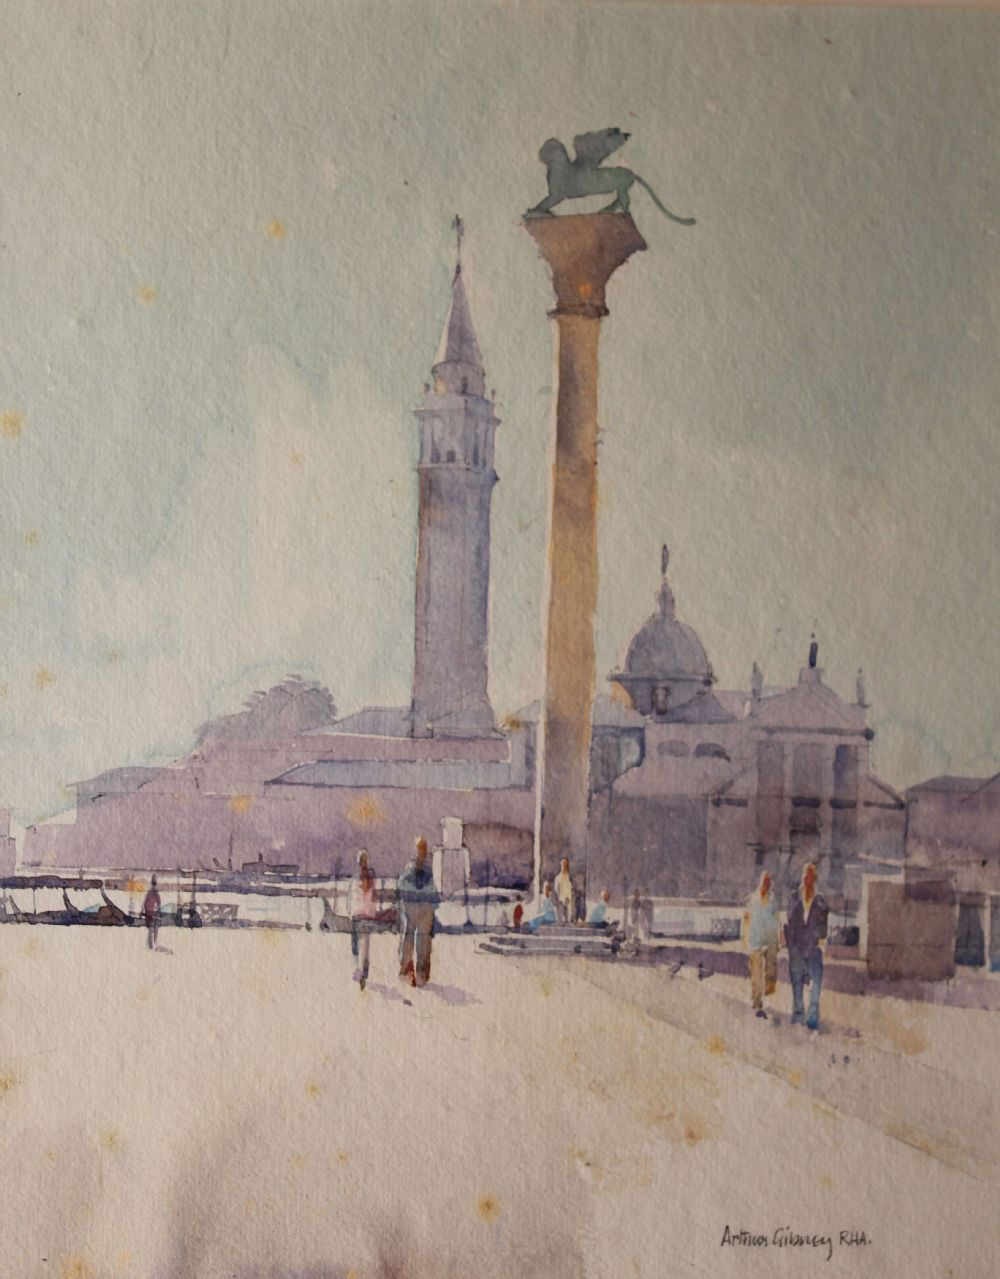 VENITIAN QUAYSIDE by Arthur Gibney  at deVeres Auctions